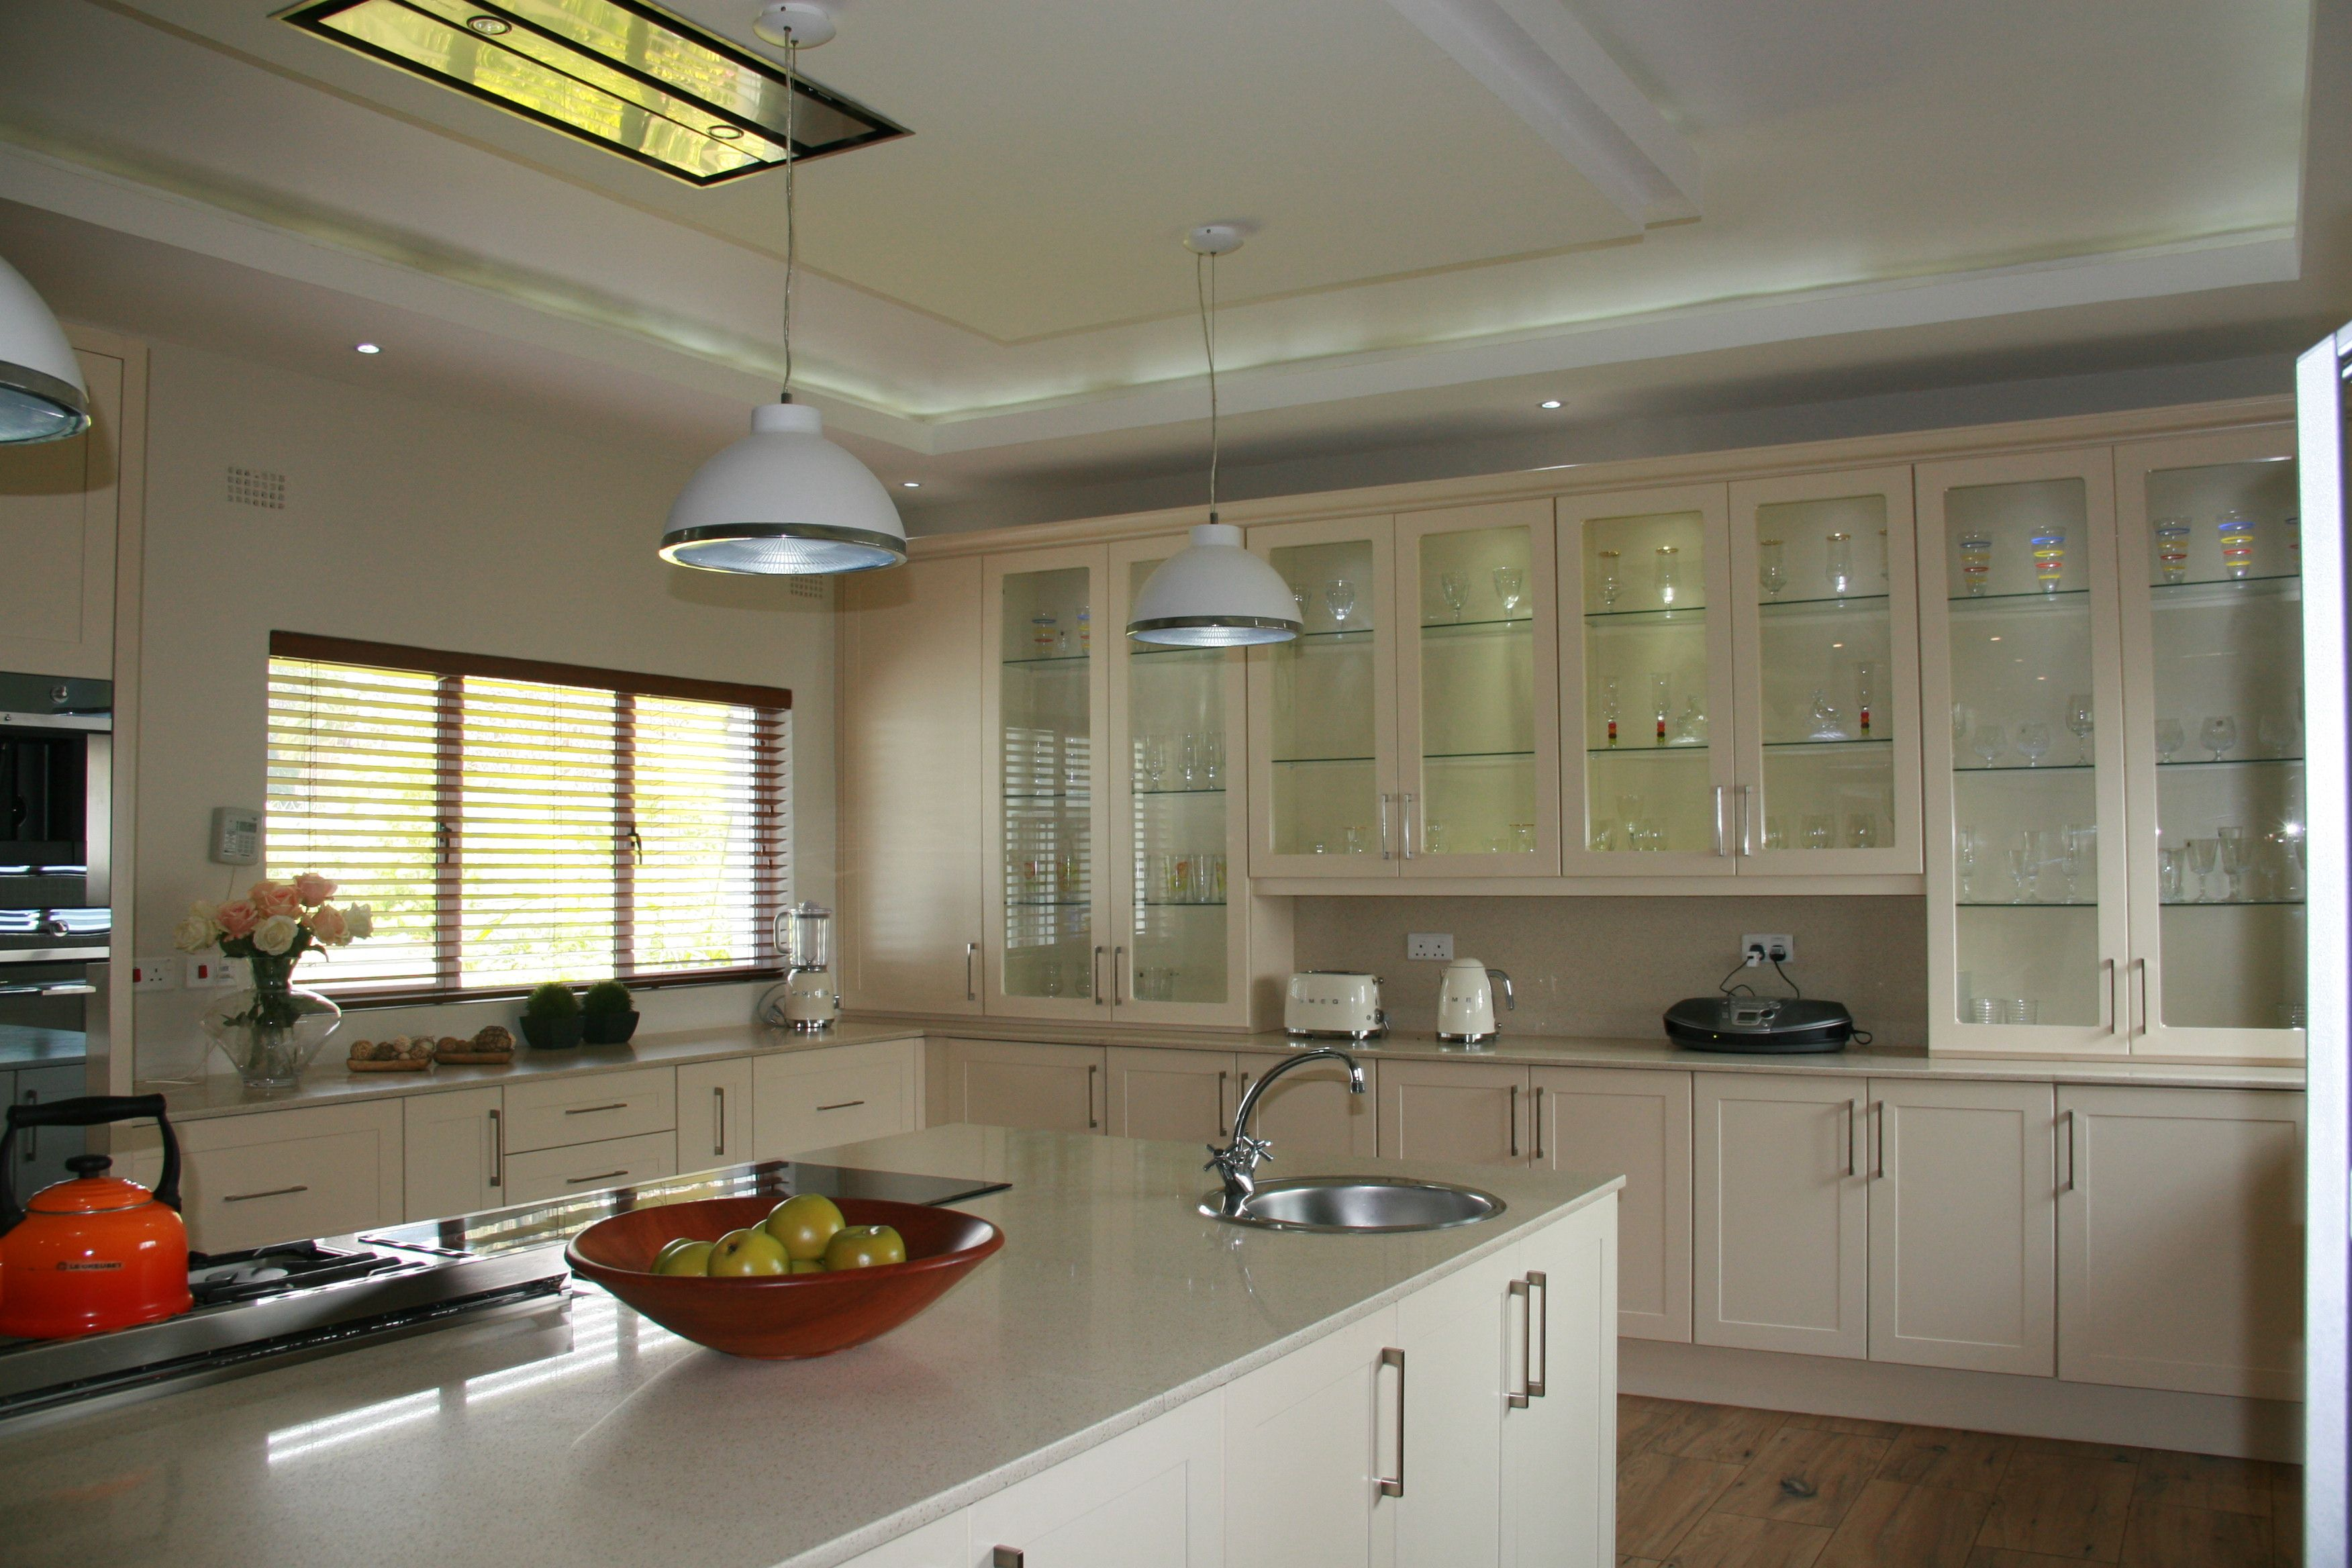 Modern Furniture Zimbabwe a beautiful modern and classy kitchen recently installed in the